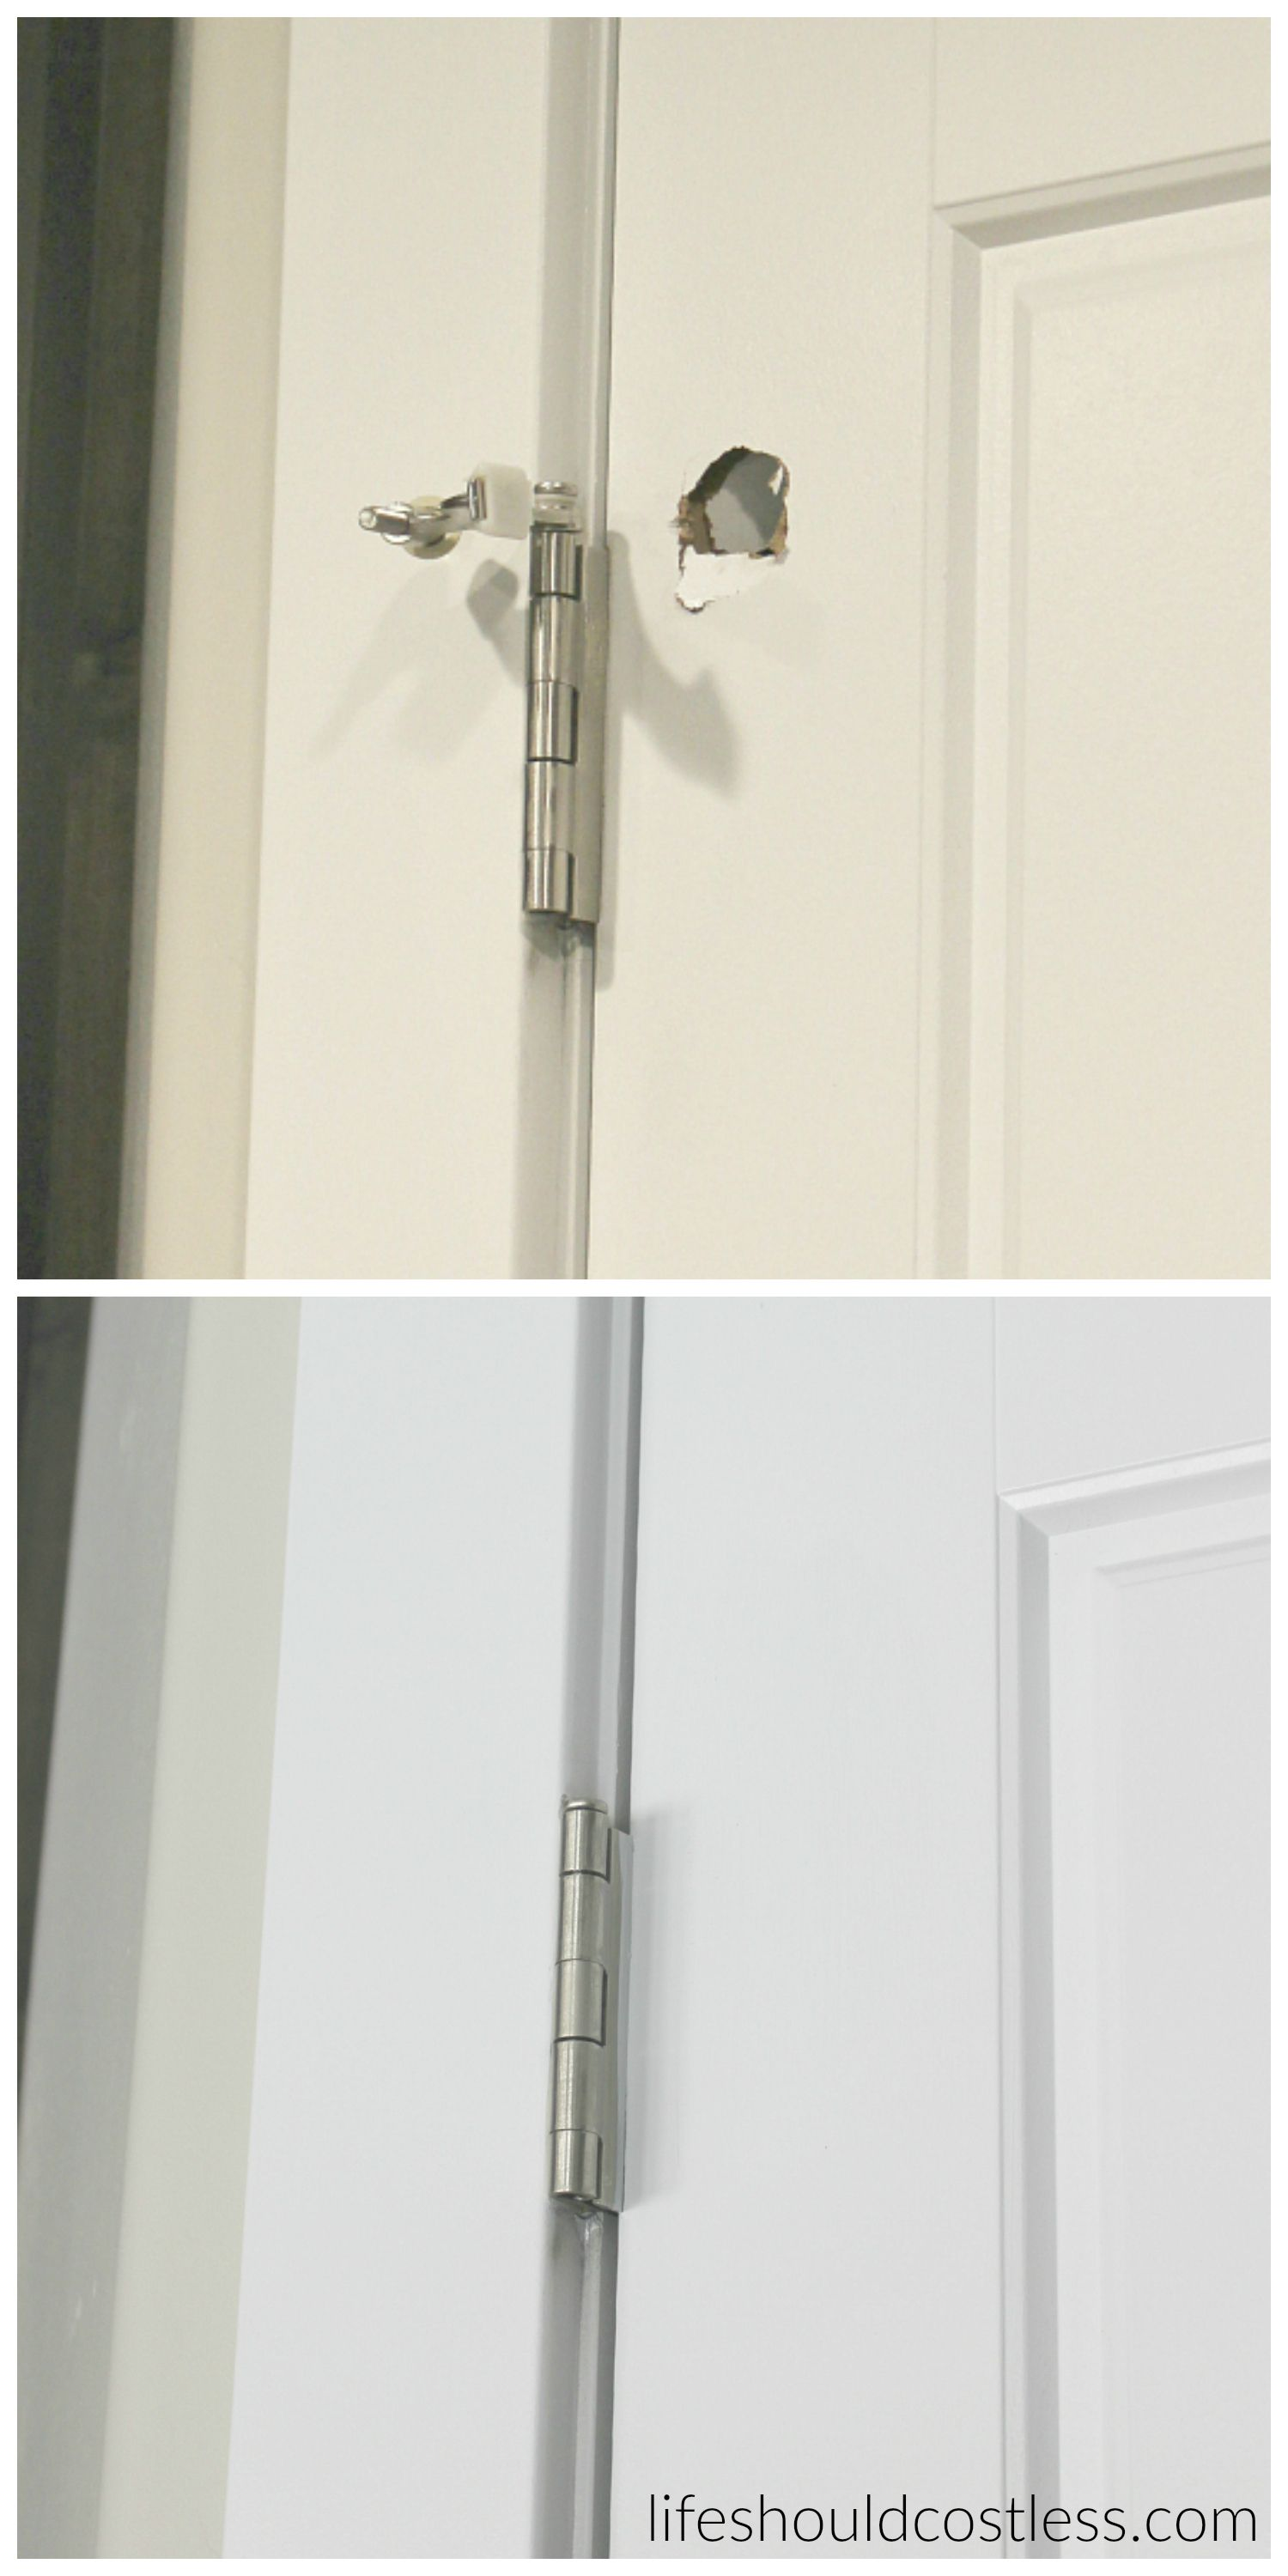 How To Patch A Hollow Door A Must To Know How To Patch Them After Your Kids Pop Holes In Them Diy Home Repair Home Improvement Projects Home Remodeling